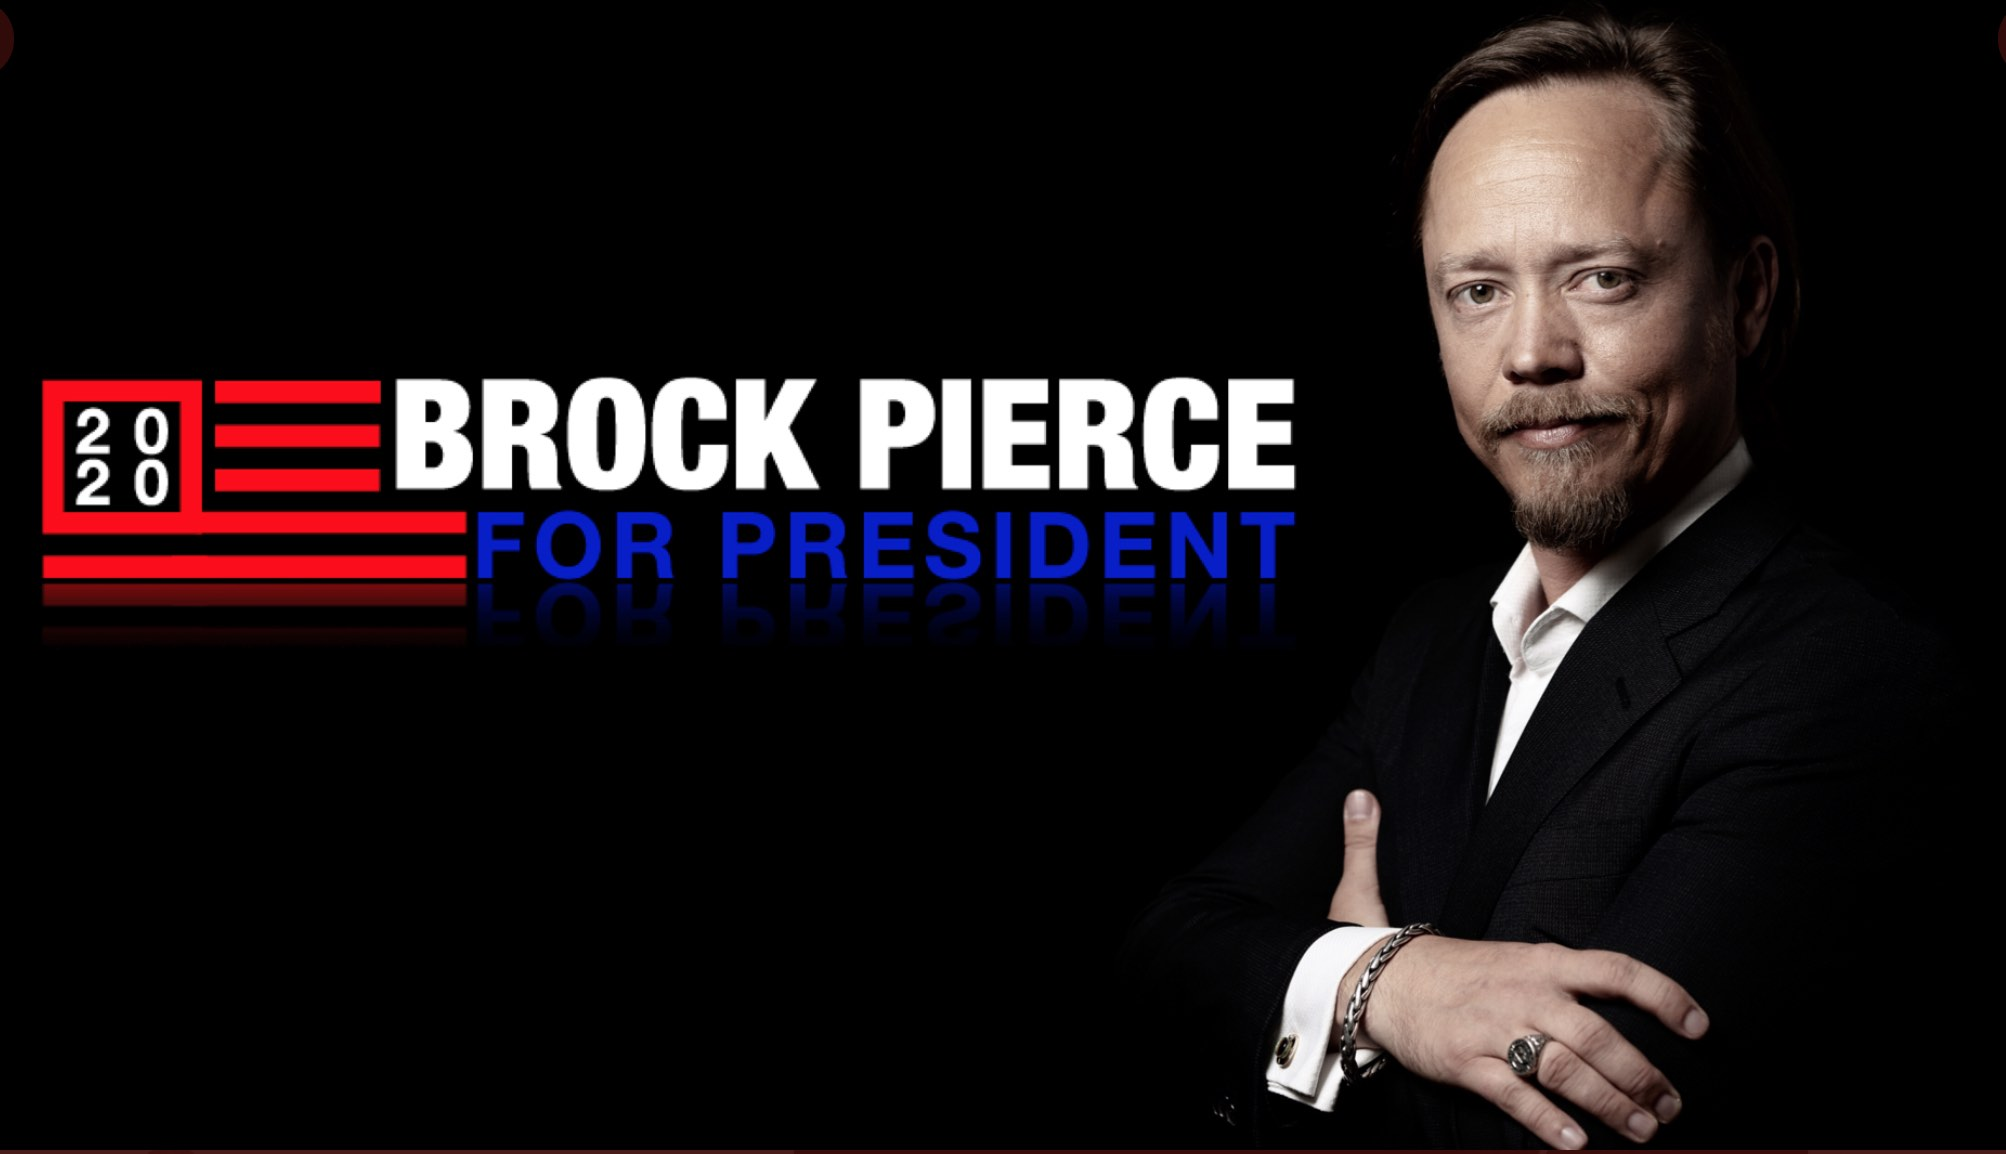 brock pierce presidencia